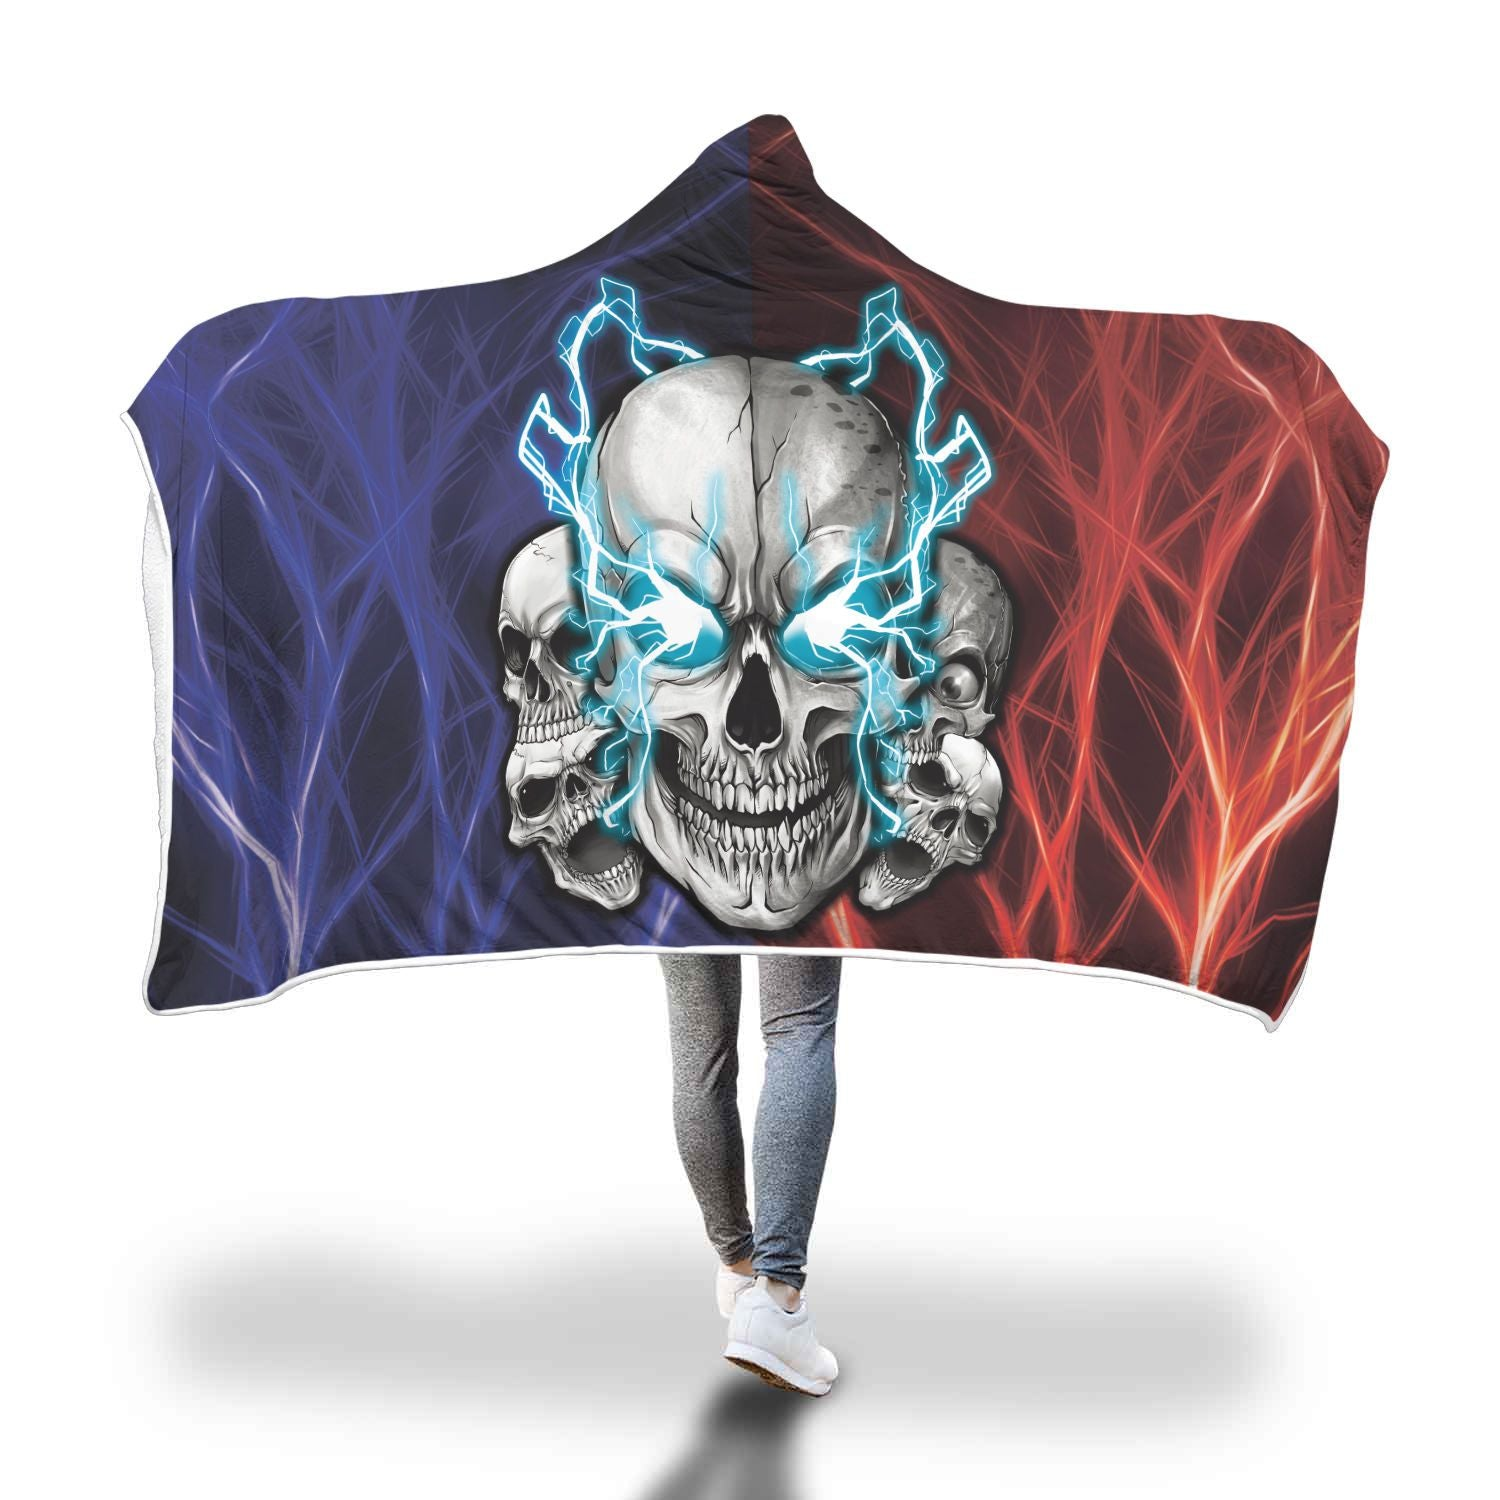 Xeuz™ Hooded Blanket-Hooded Blanket-wc-fulfillment-SKULLZOPHRENIA